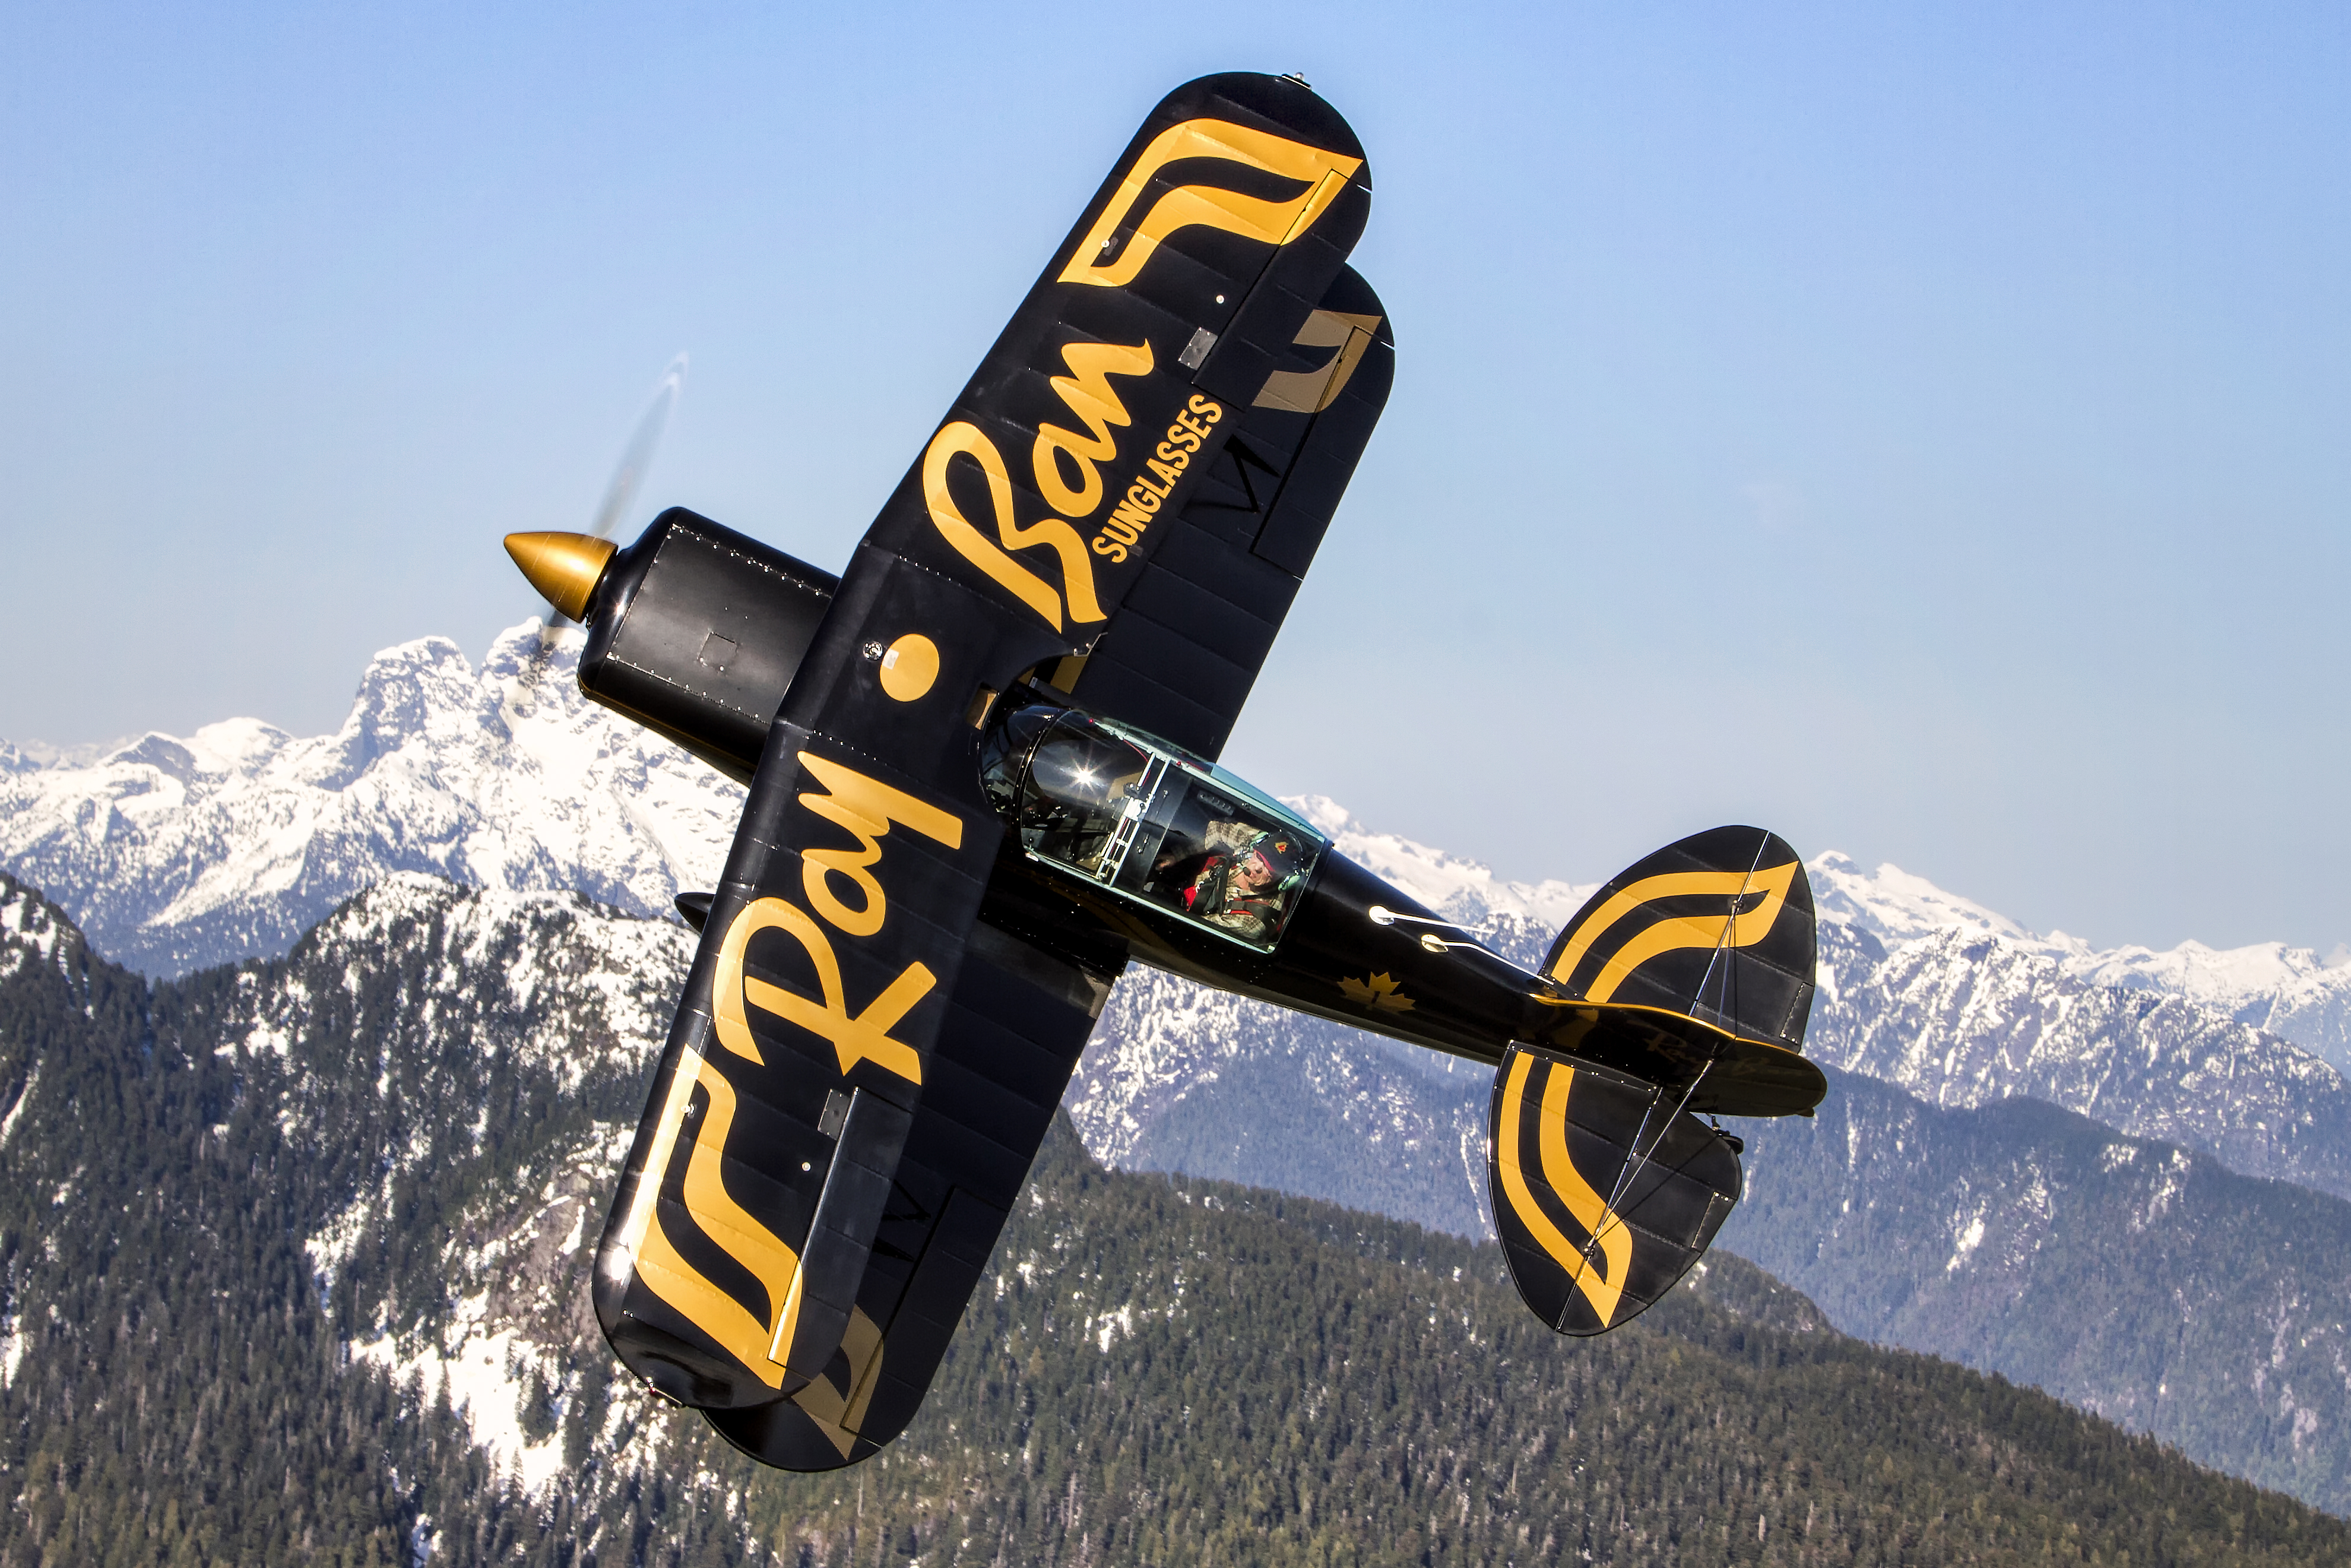 George Kirbyson flies his Pitts Special, still in the famous colours of the Ray-Ban Gold aerobatic team. Mike Luedey Photo